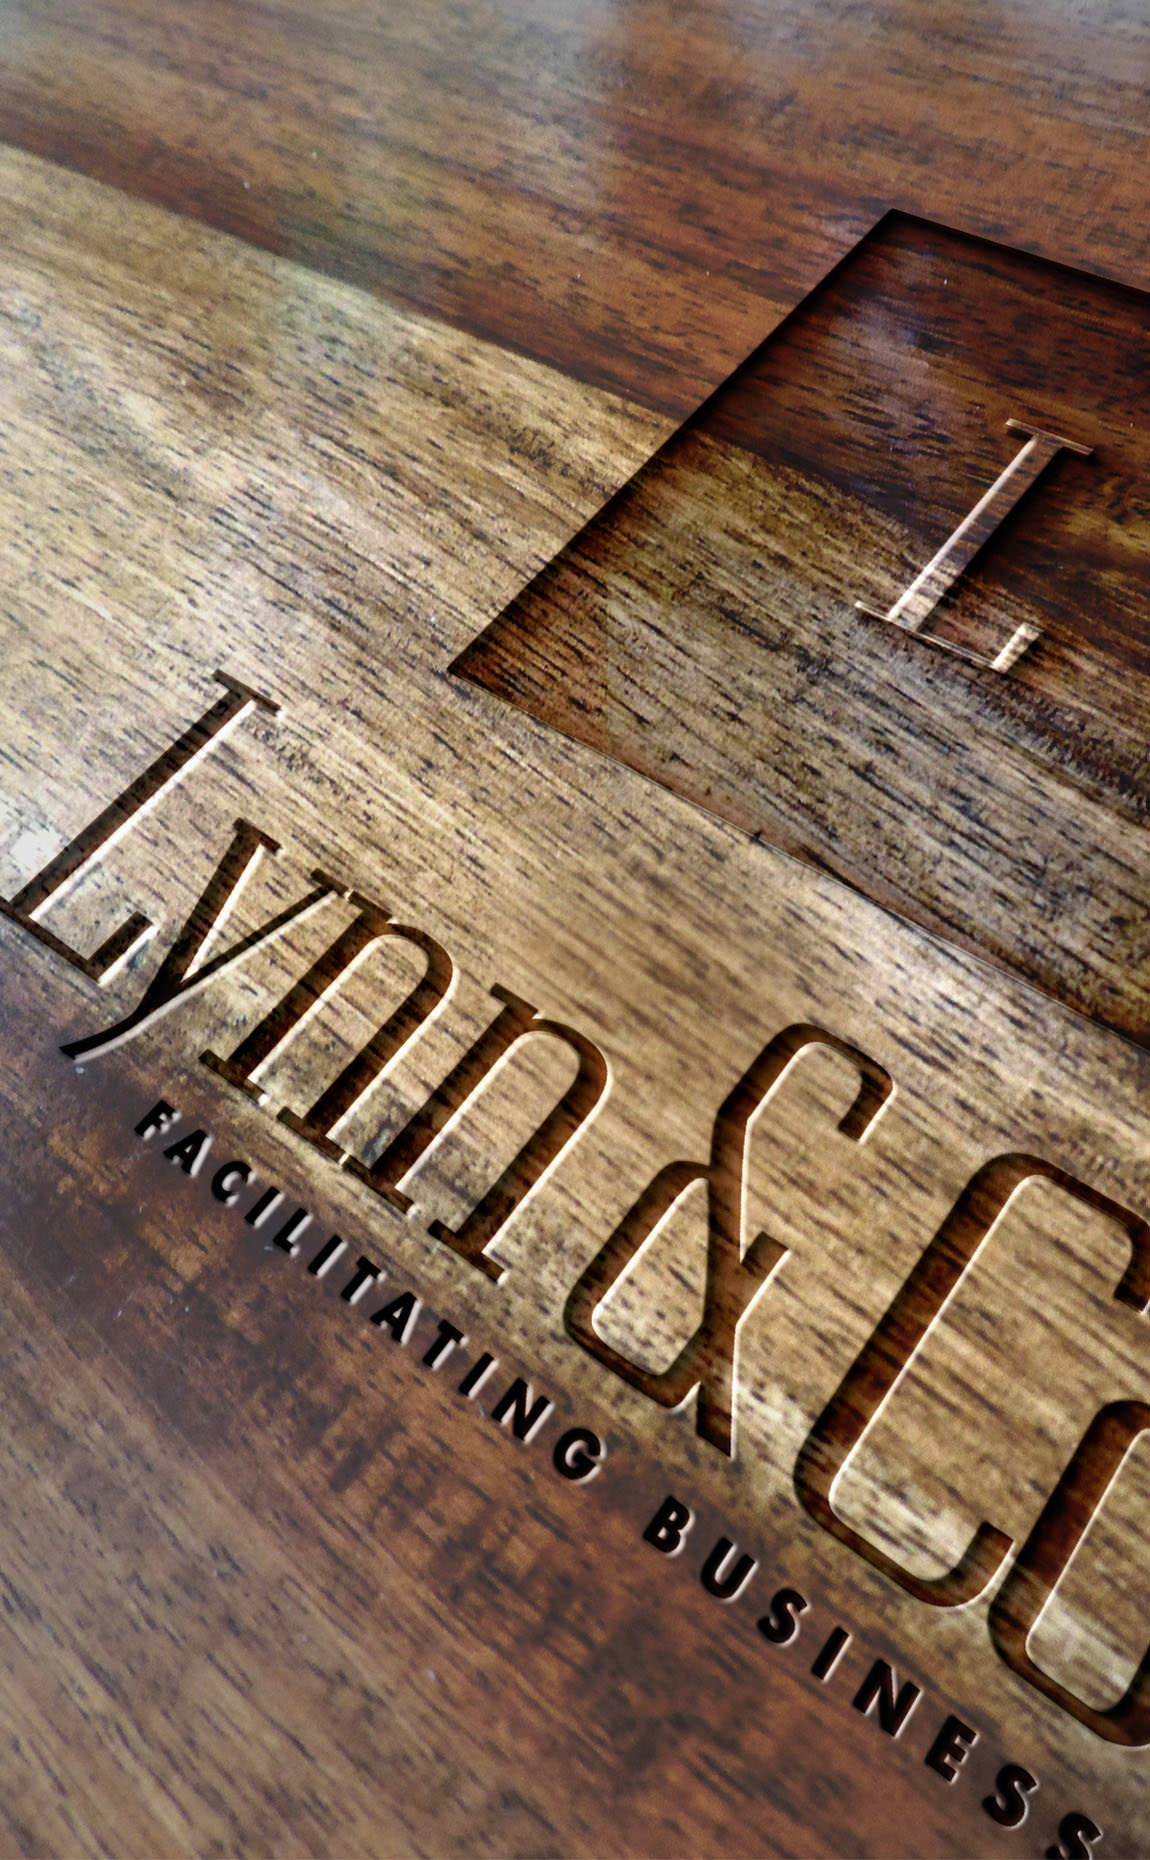 About Lynn&Co Image